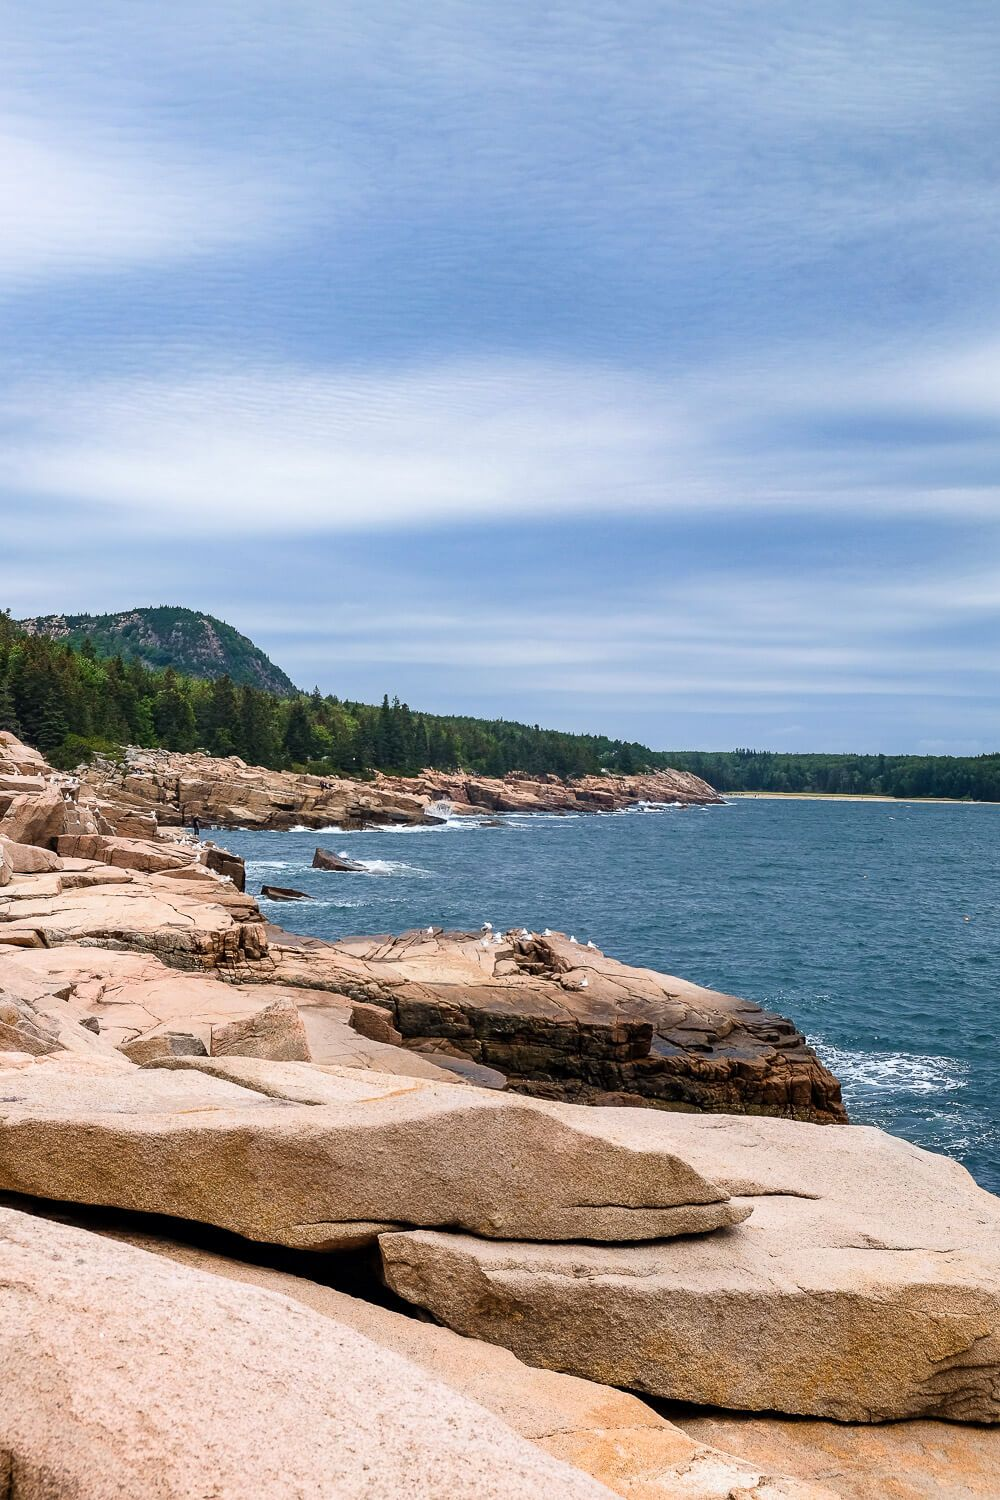 Ocean Path: One day in acadia national park